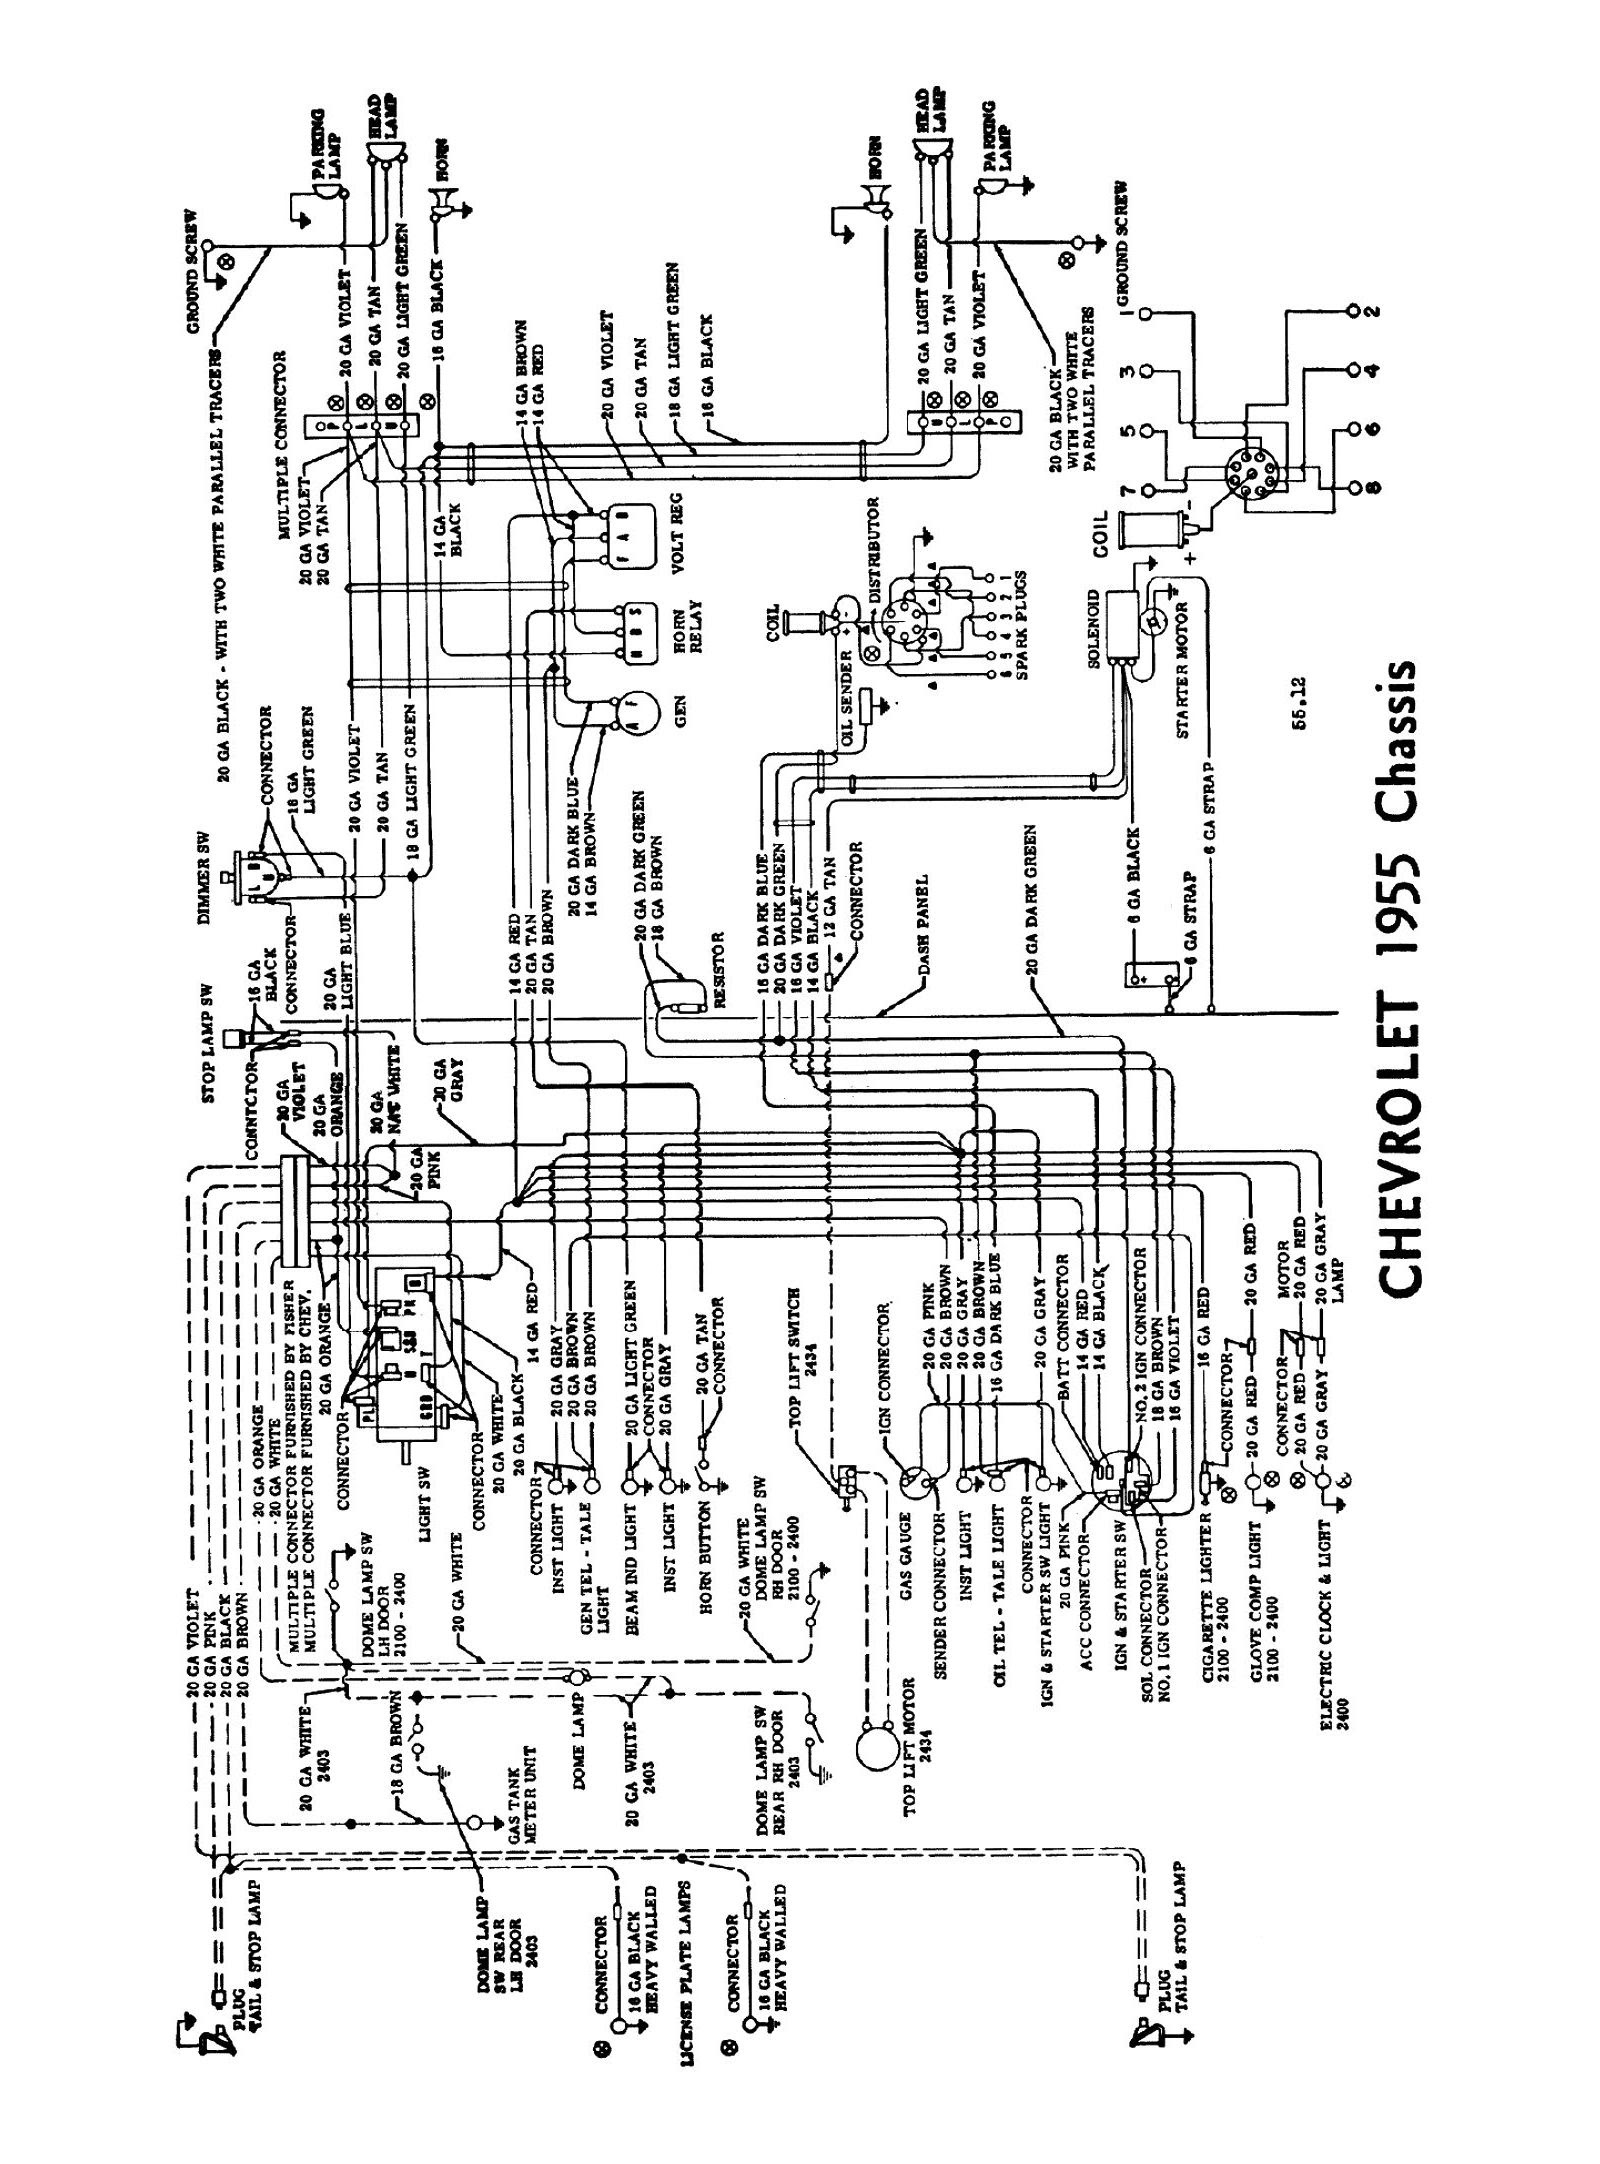 20 New 1955 Chevy Ignition Switch Wiring Diagram